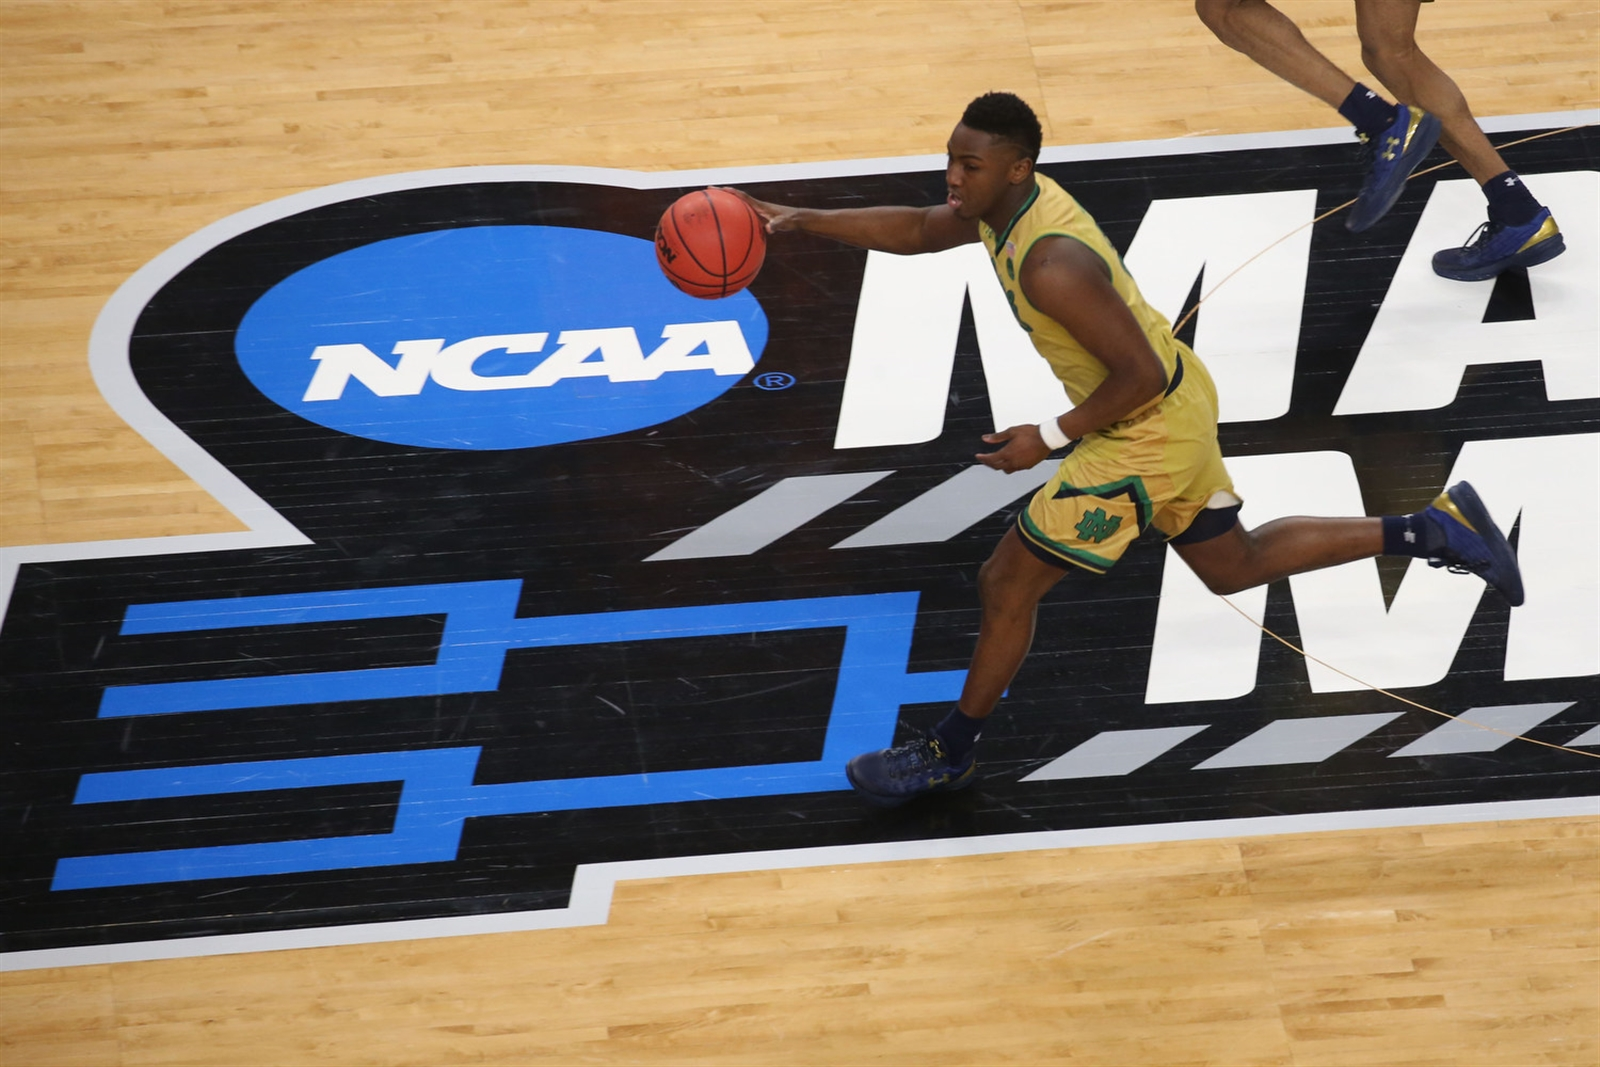 Notre Dame guard T.J. Gibbs runs down the court against Princeton in the first round of the NCAA Tournament at KeyBank Center on Friday, March 17, 2017. (Derek Gee/Buffalo News)